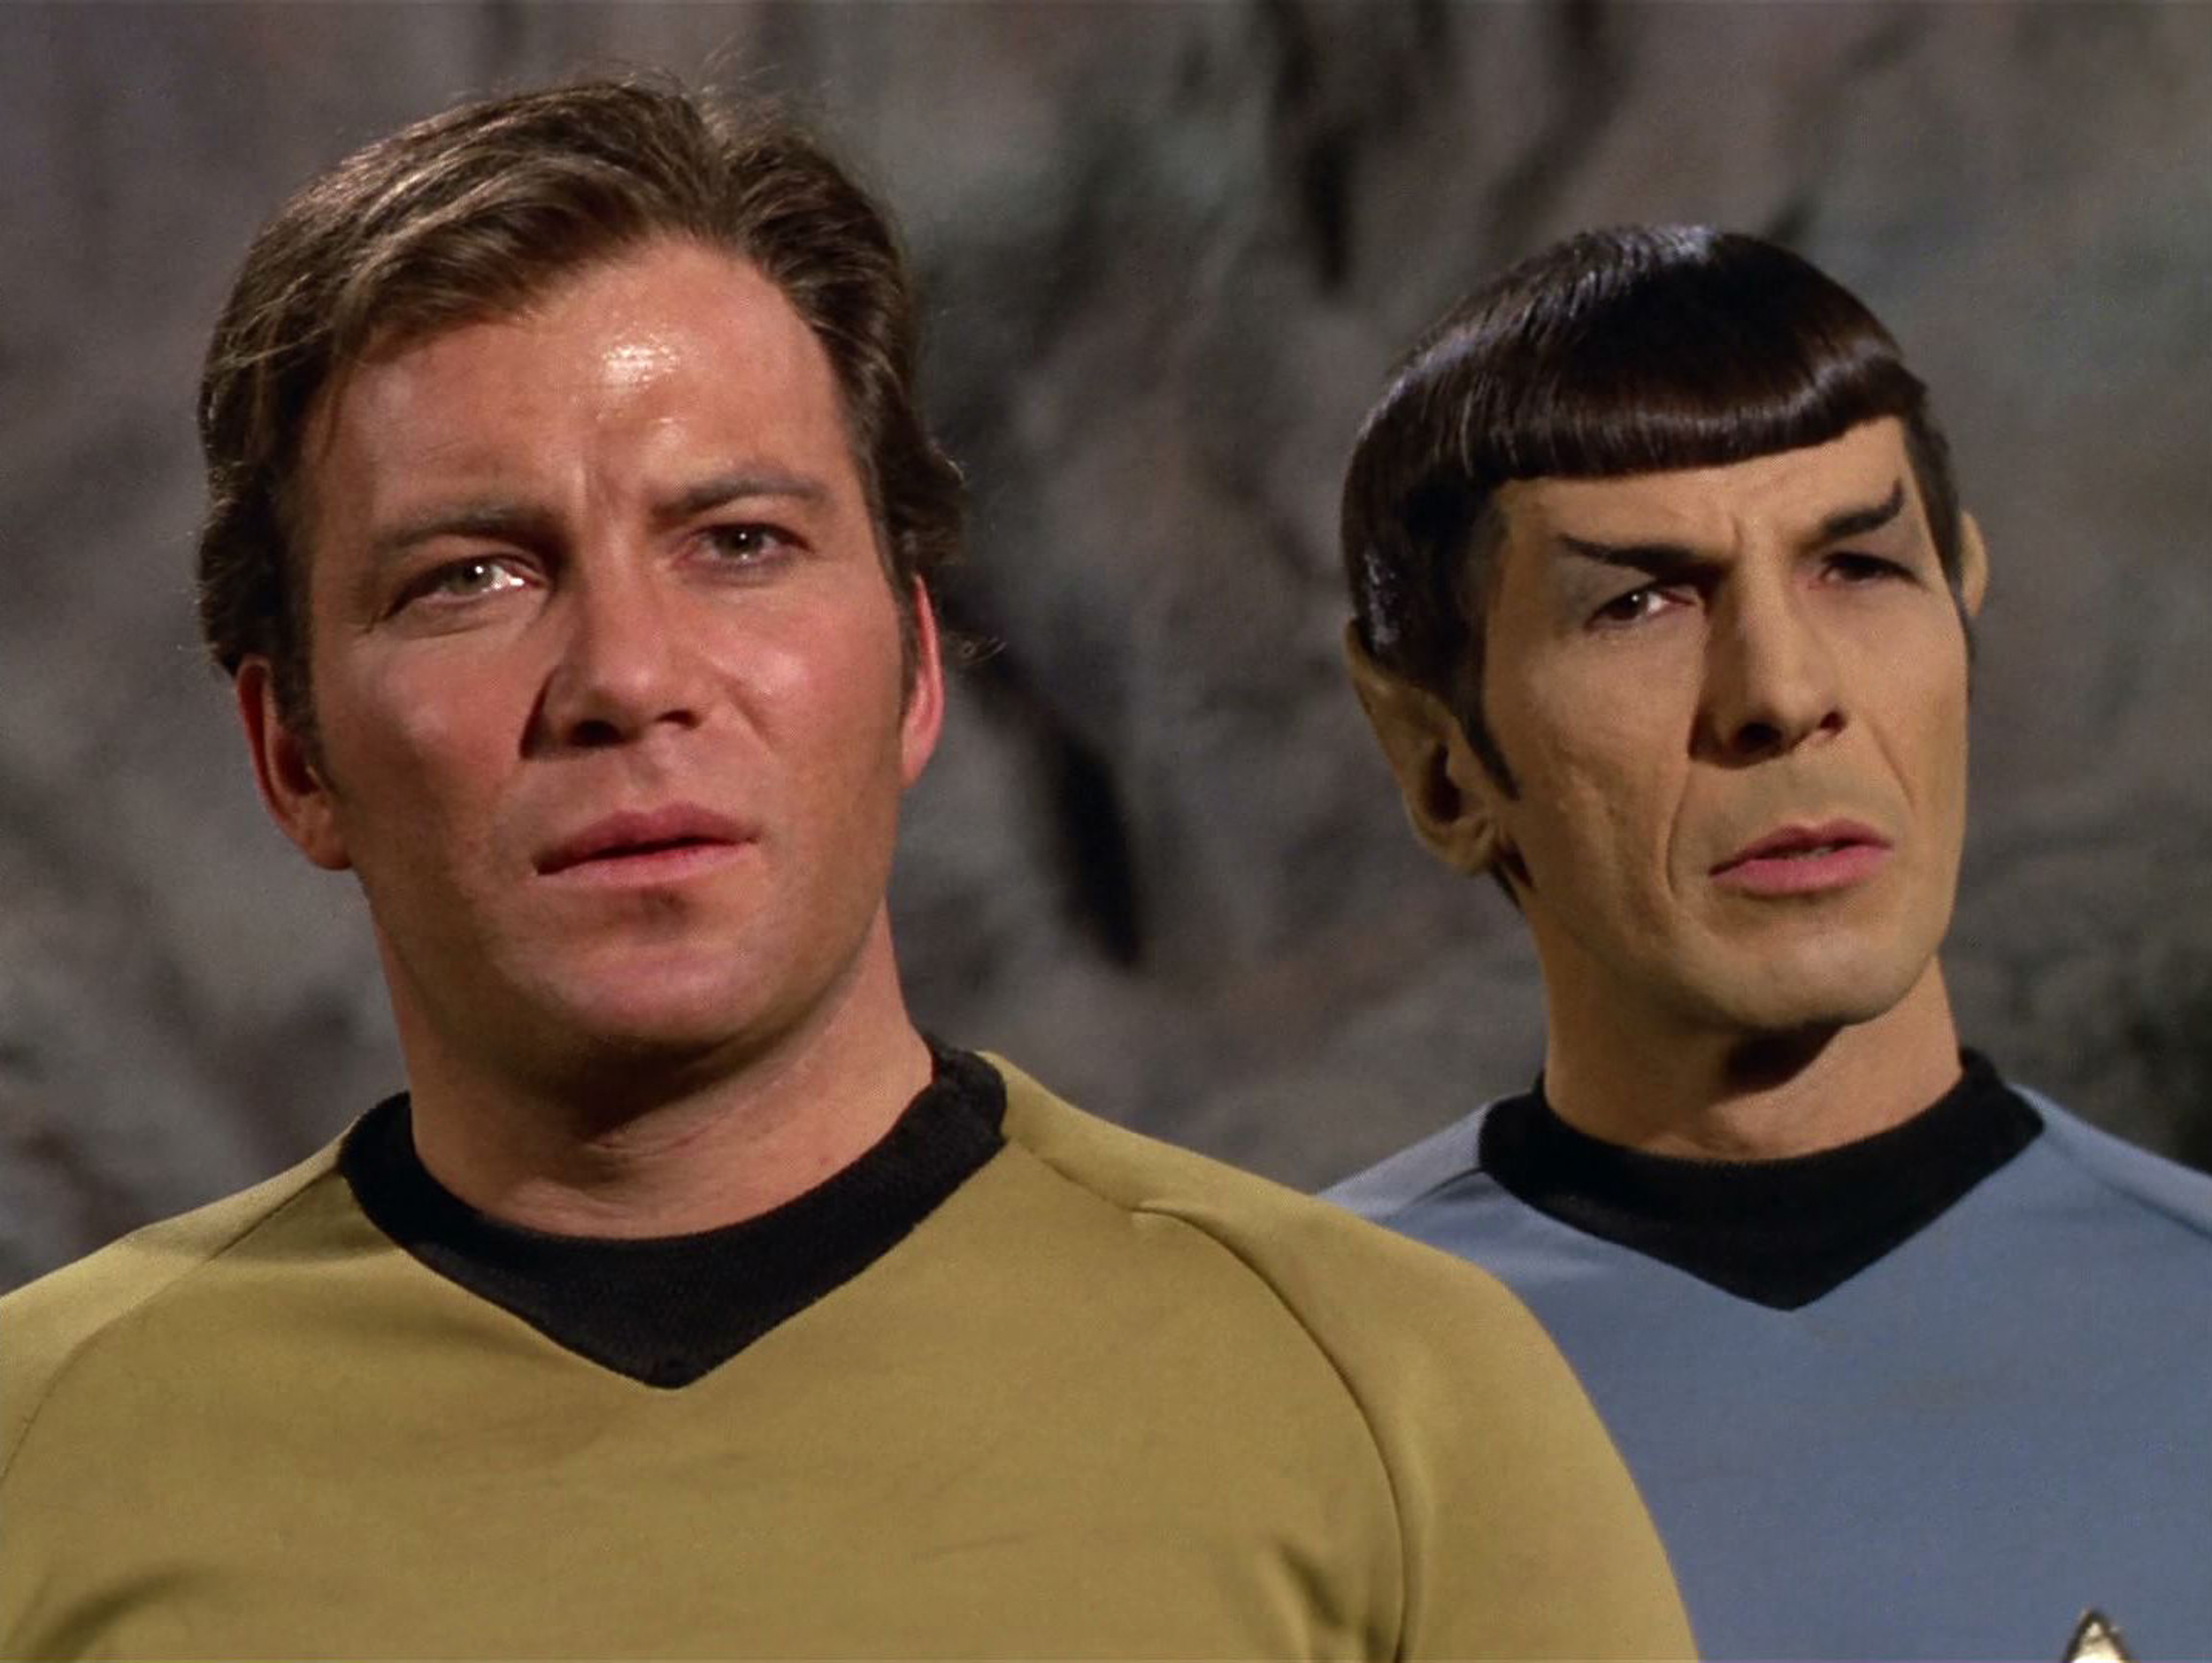 LOS ANGELES - FEBRUARY 28:  William Shatner as Captain James T. Kirk and Leonard Nimoy as Mr. Spock in the STAR TREK: THE ORI